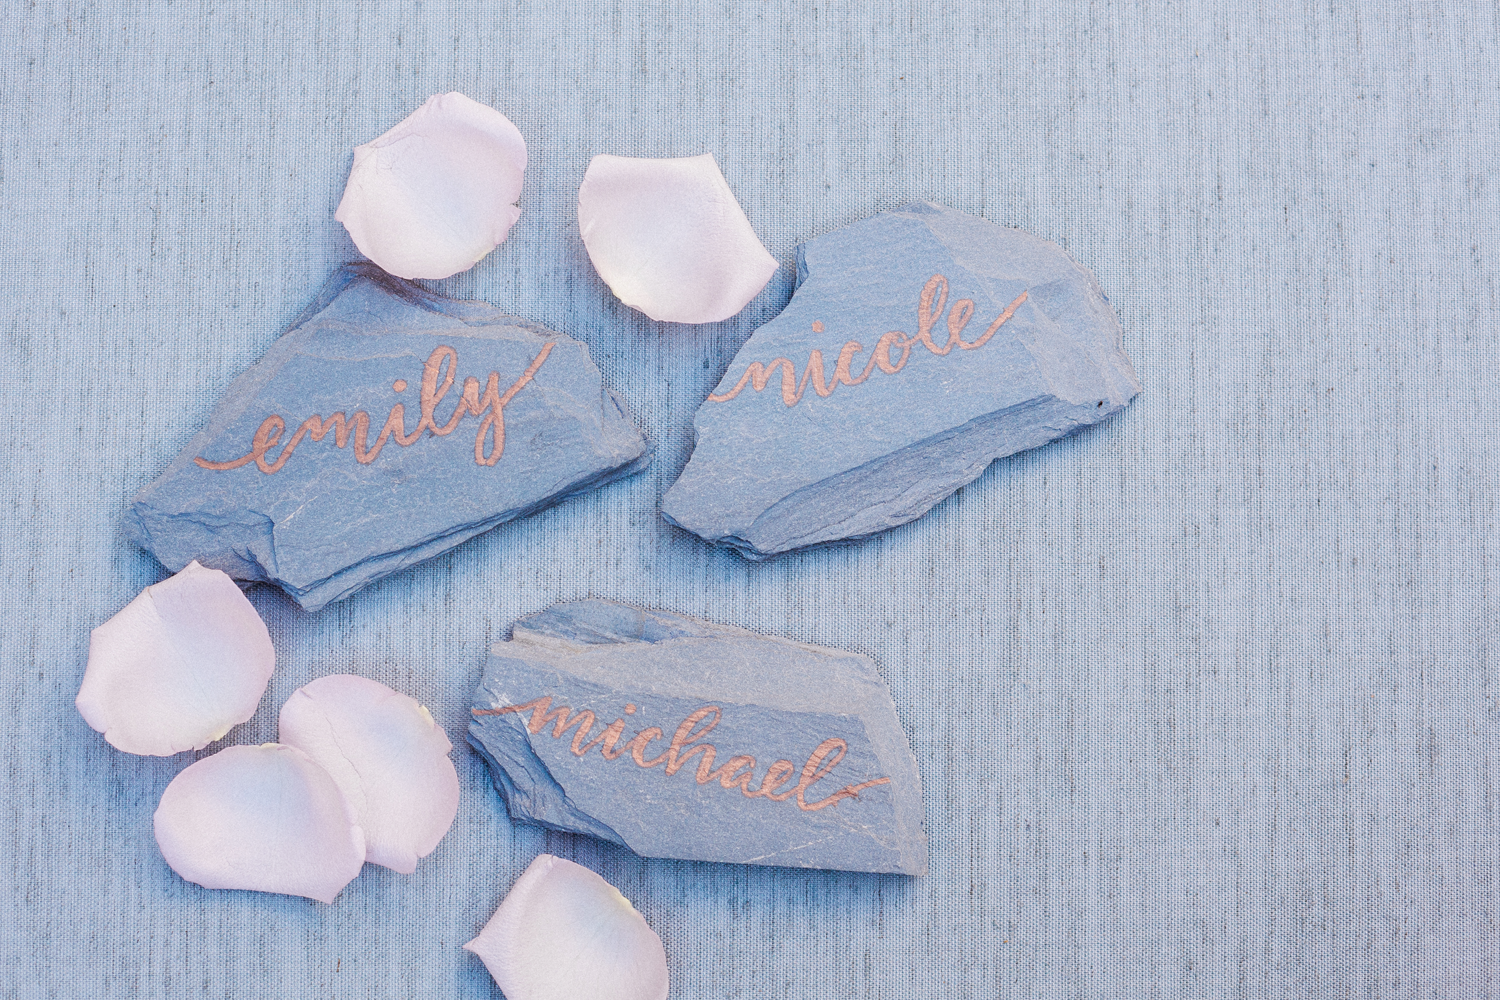 Slate Placecards with Copper Calligraphy